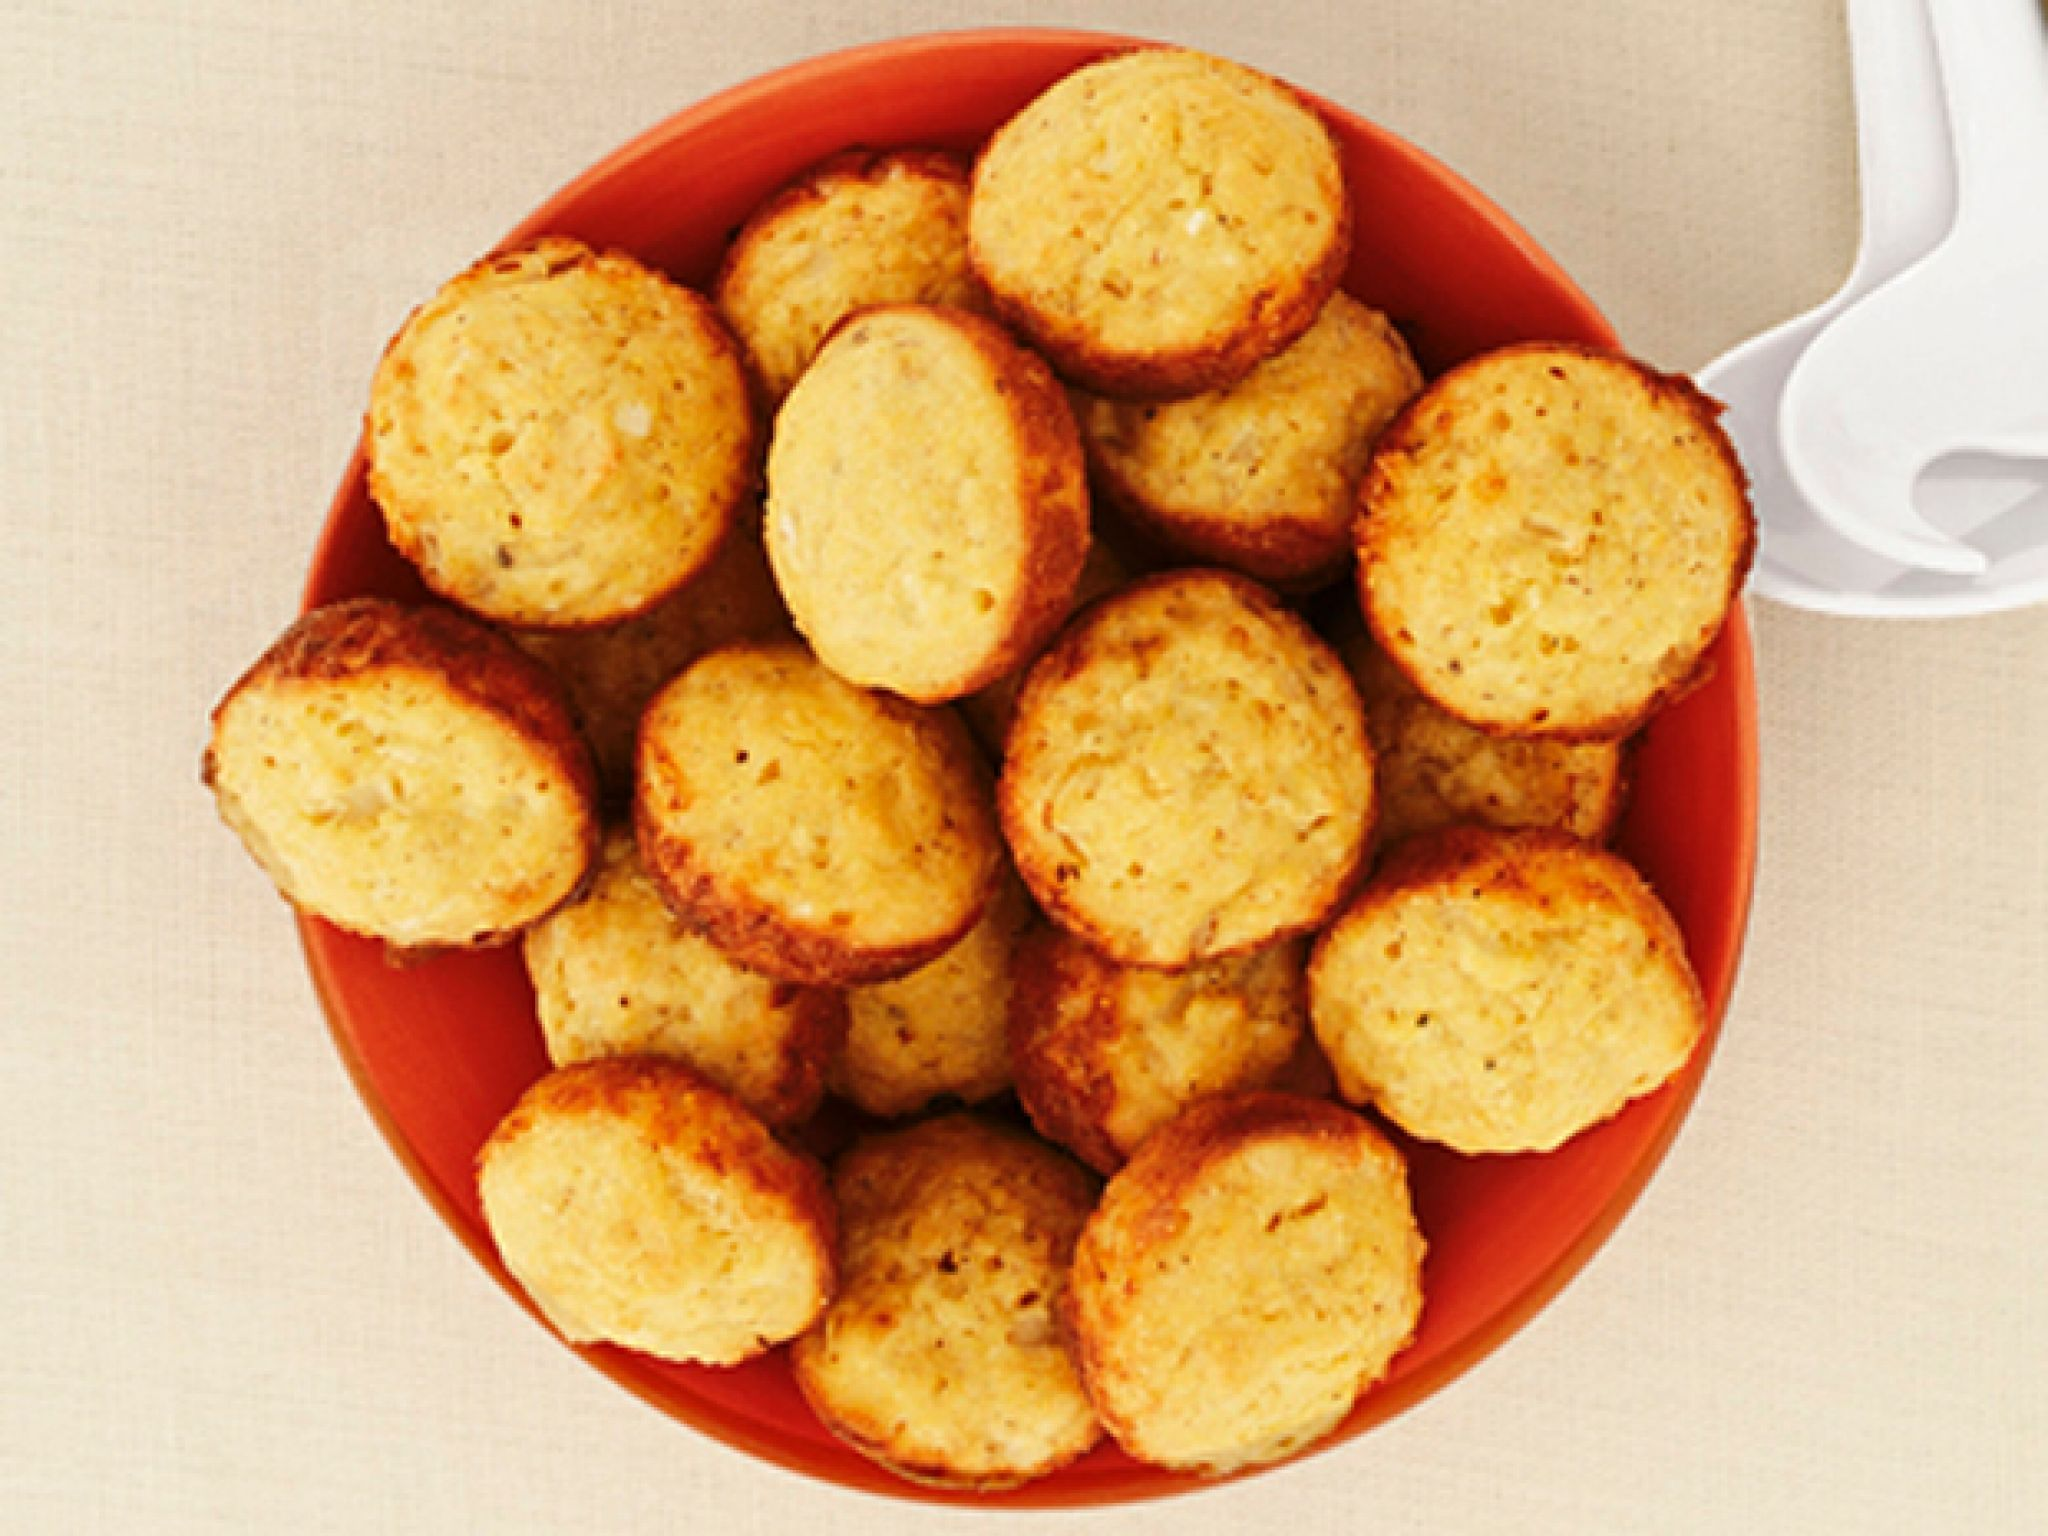 The Deen Brothers Baked Hush Puppies The Deen Brothers Hush Puppies Have All Of The D With Images Baked Hush Puppies Food Network Recipes Hush Puppies Recipe